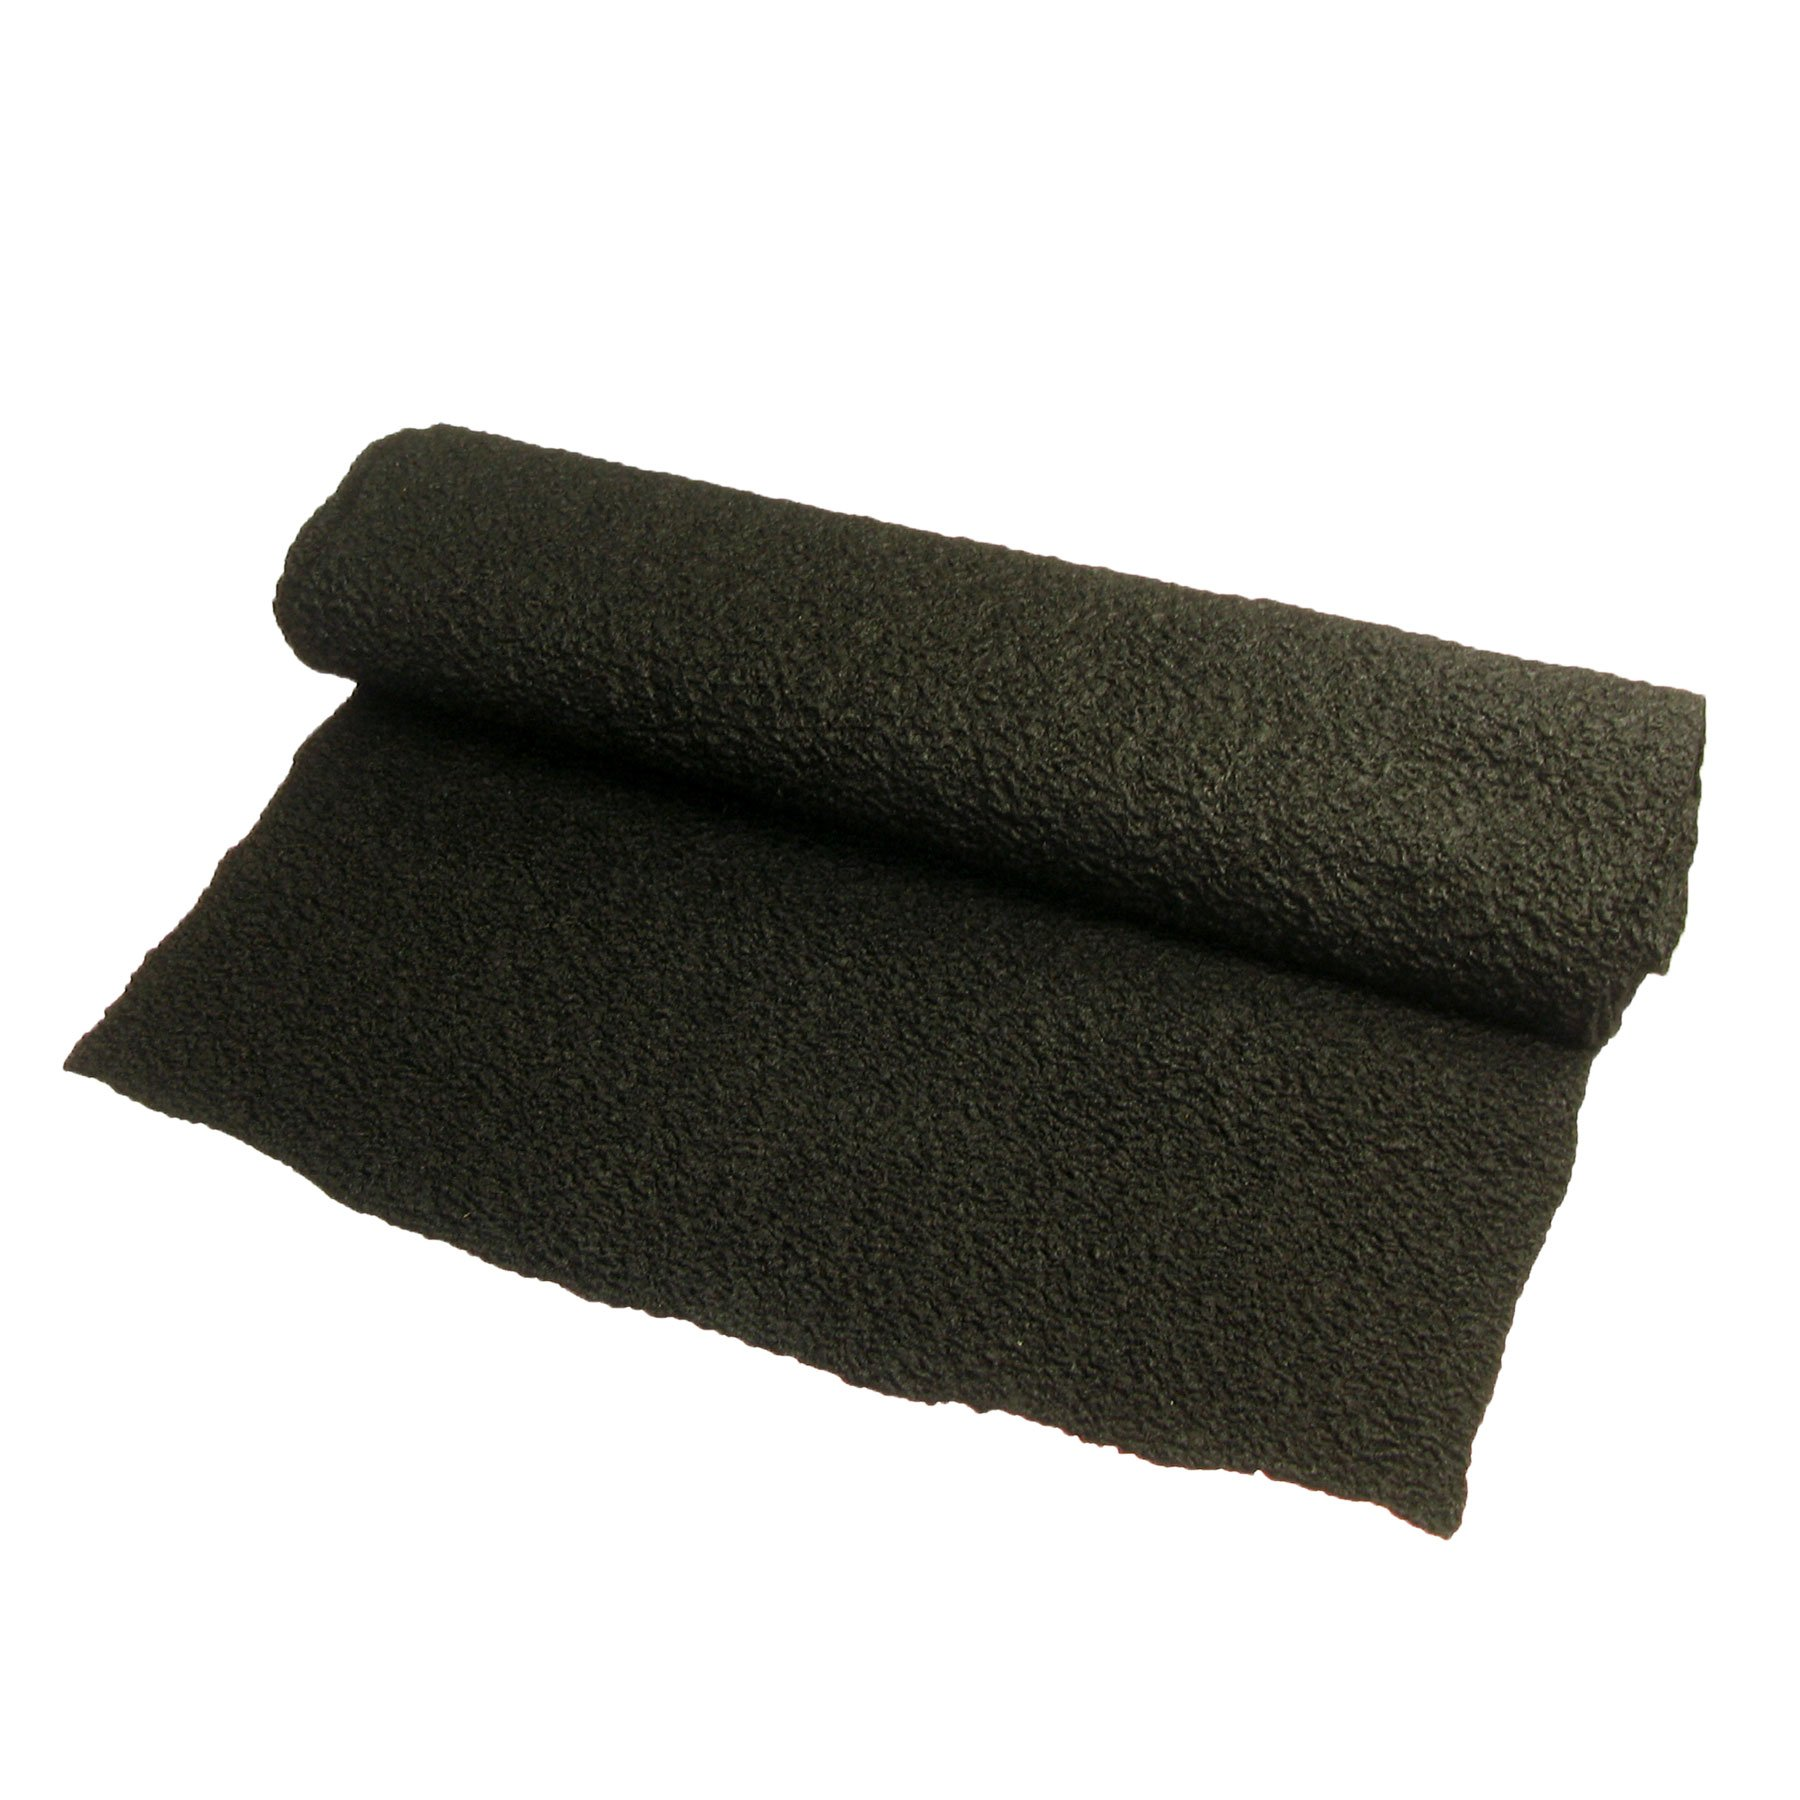 """1/8"""" (3.2mm) Crepe Rubber - 18"""" x 20"""" Sheets - Natural"""